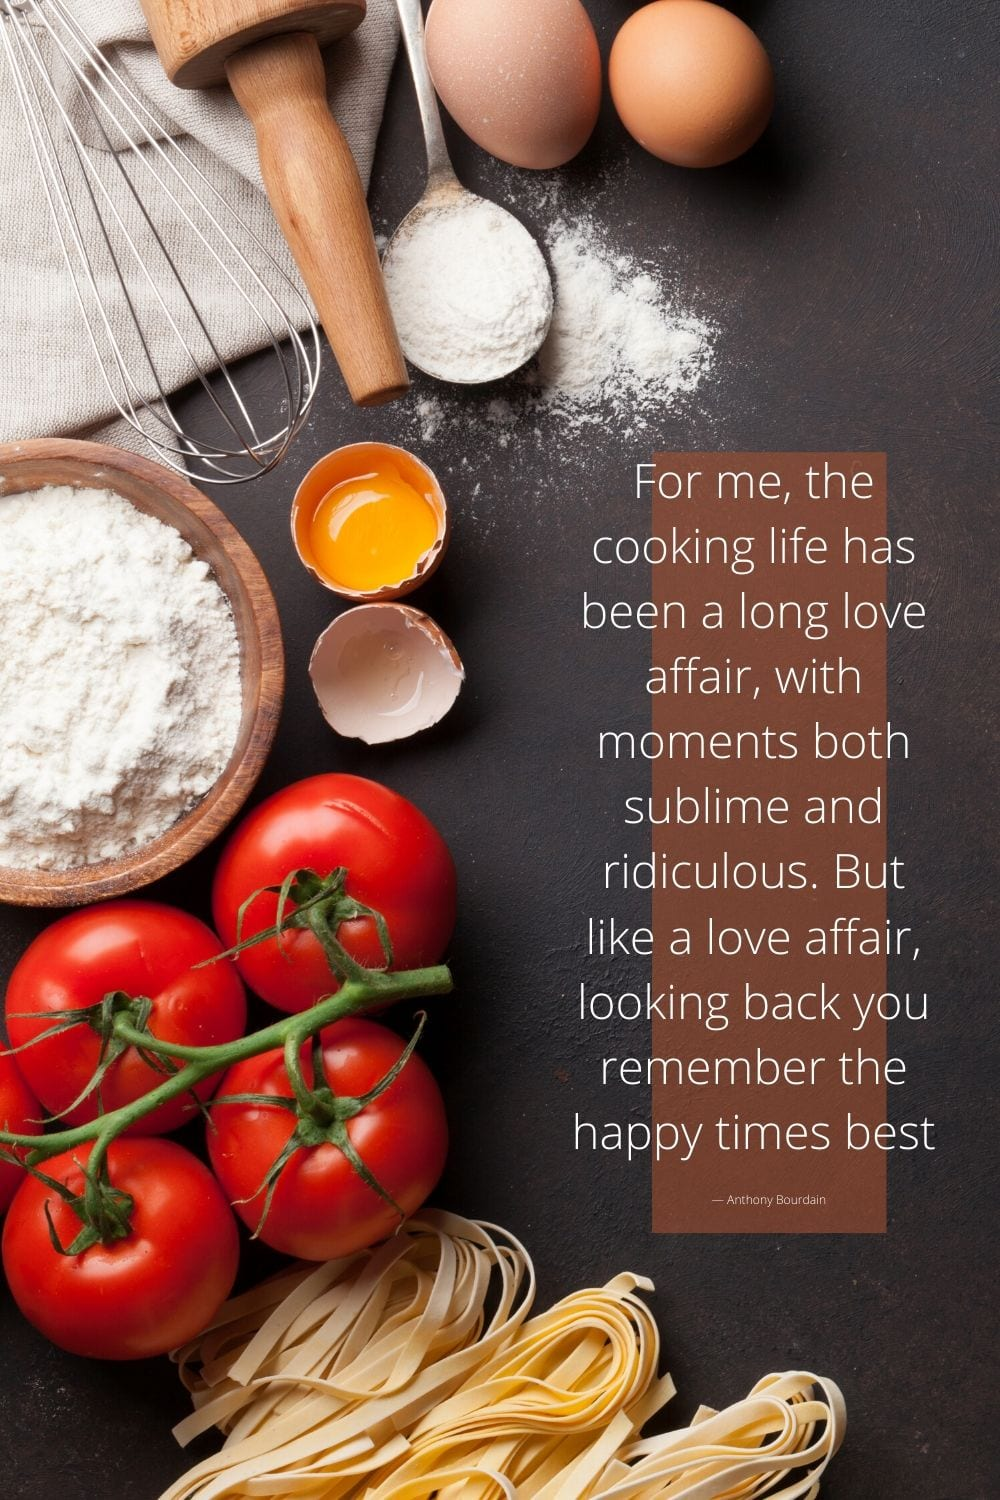 """""""For me, the cooking life has been a long love affair, with moments both sublime and ridiculous. But like a love affair, looking back you remember the happy times best.""""― Anthony Bourdain cooking quote"""